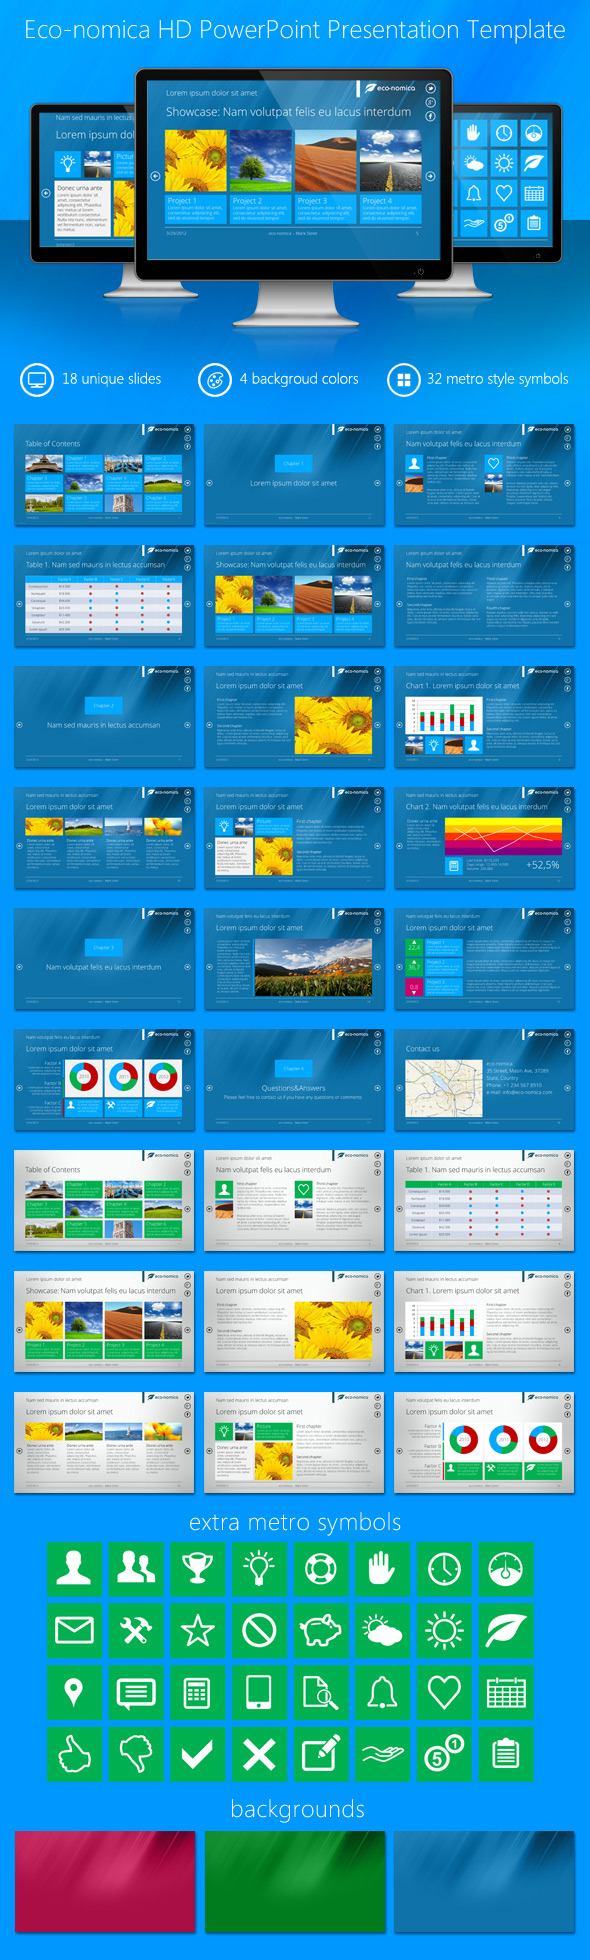 Eco-nomica HD PowerPoint Presentation Template - Business PowerPoint Templates